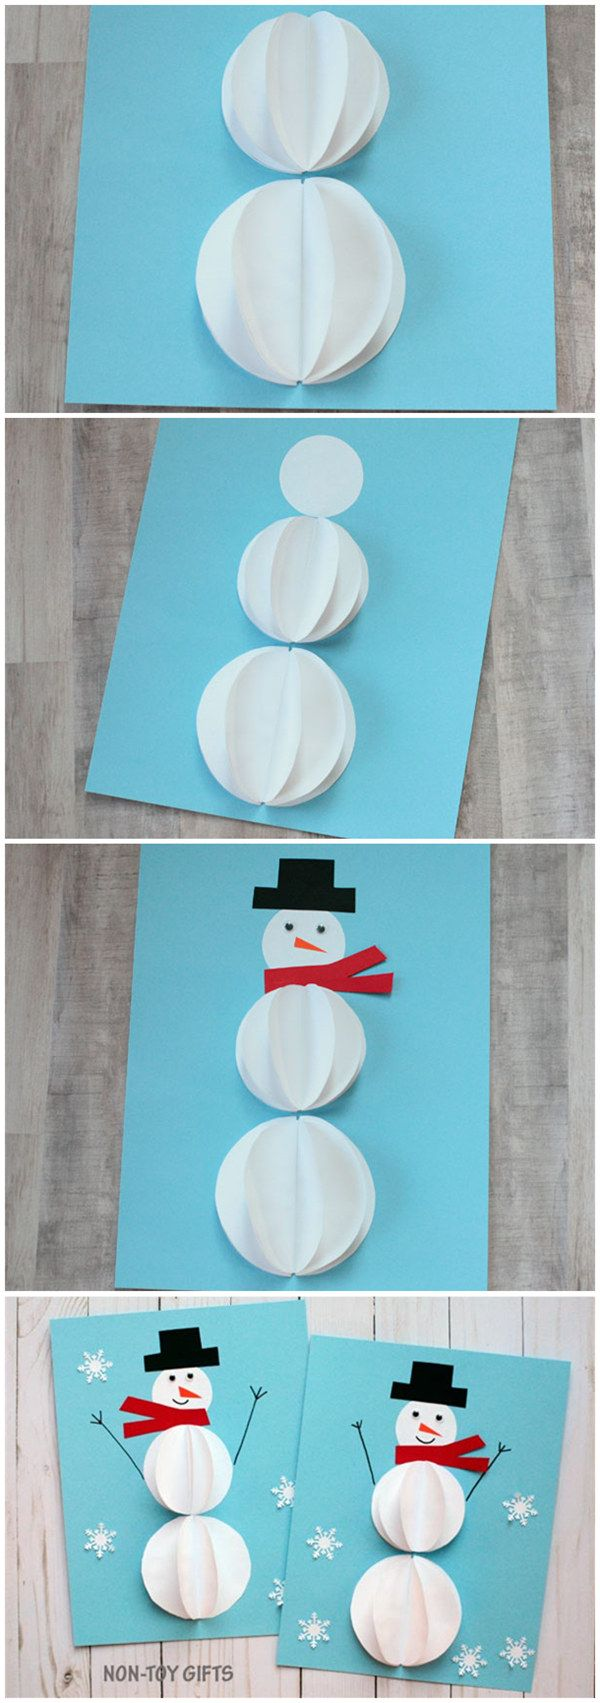 Easy paper snowman craft for kids do it yourself today easy paper snowman craft for kids solutioingenieria Image collections